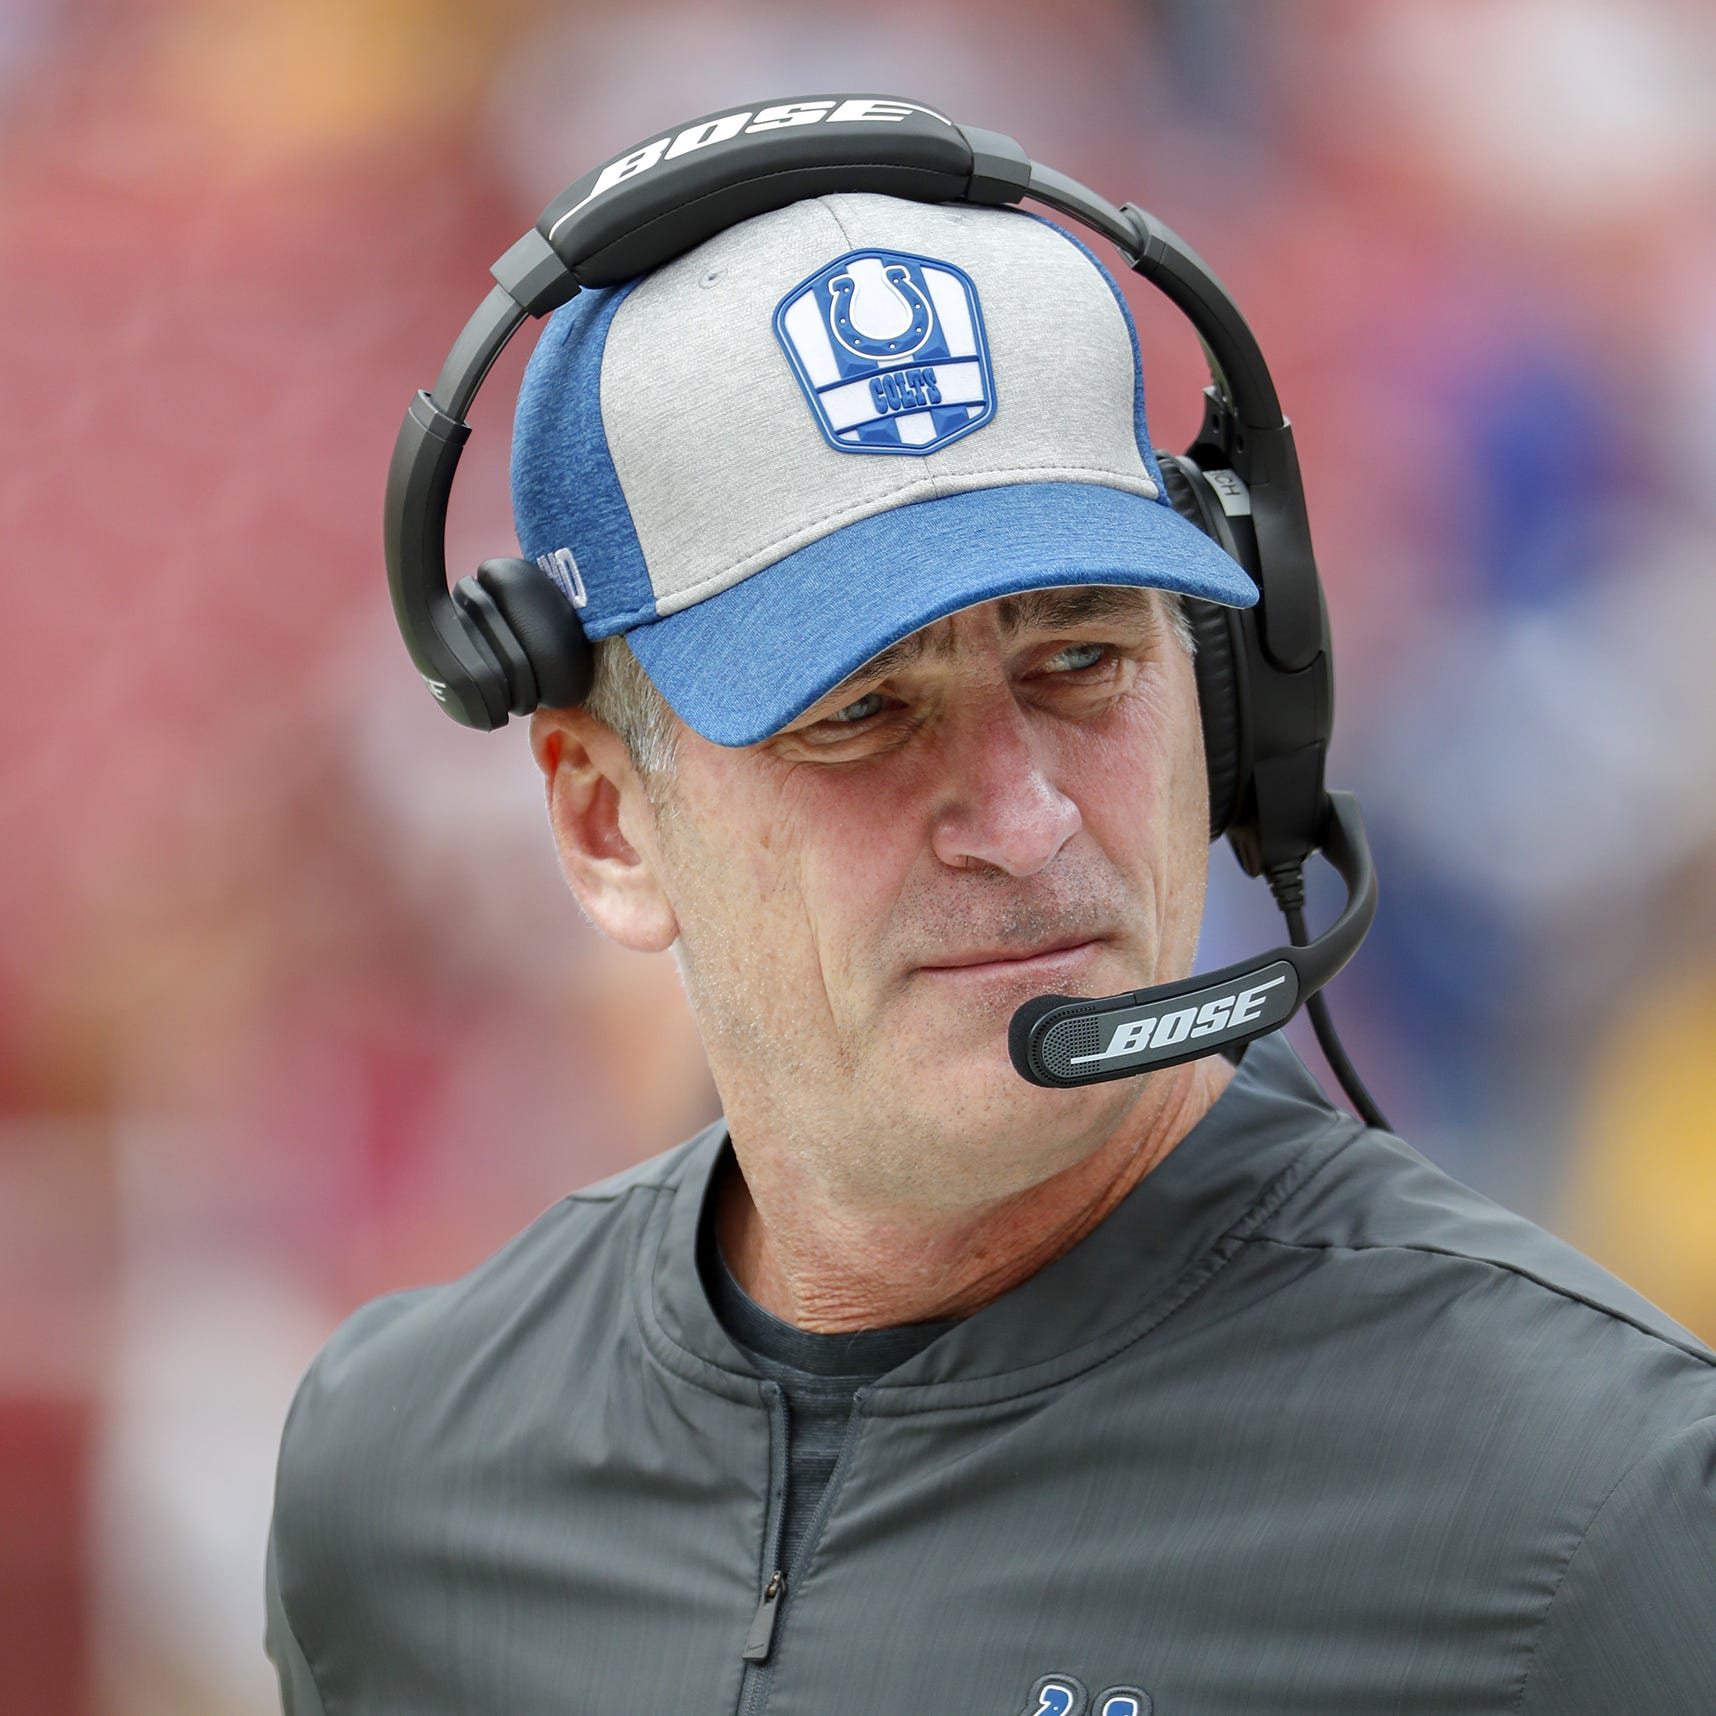 Is Colts' Frank Reich the diabolical genius at calling and designing plays he seems to be?